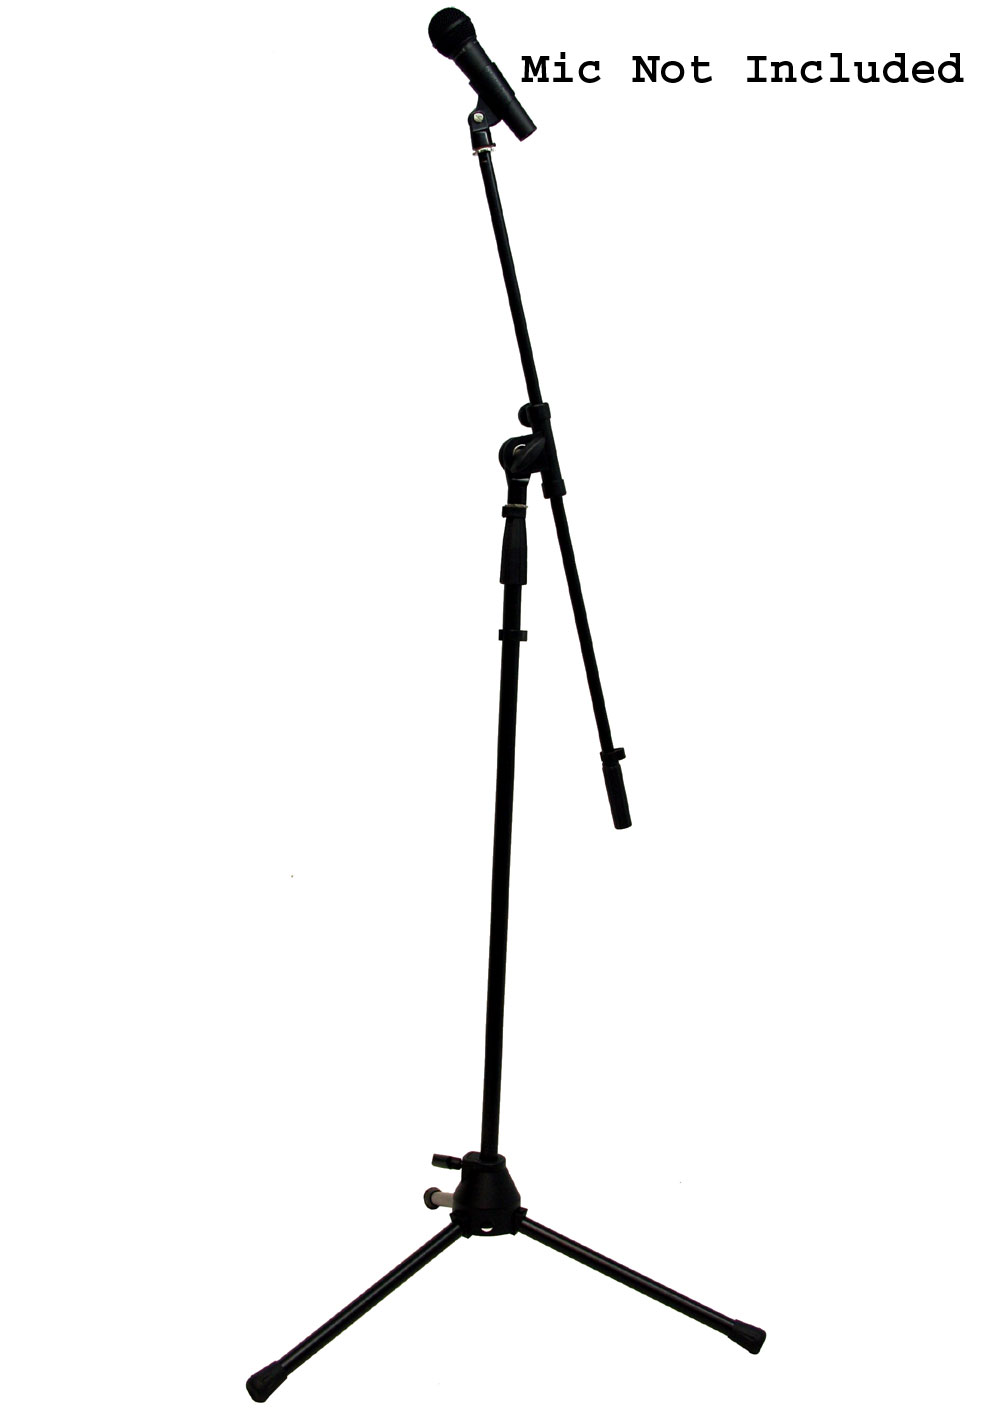 pro audio universal iron adjustable height boom arm instrument or stage tripod mic stand